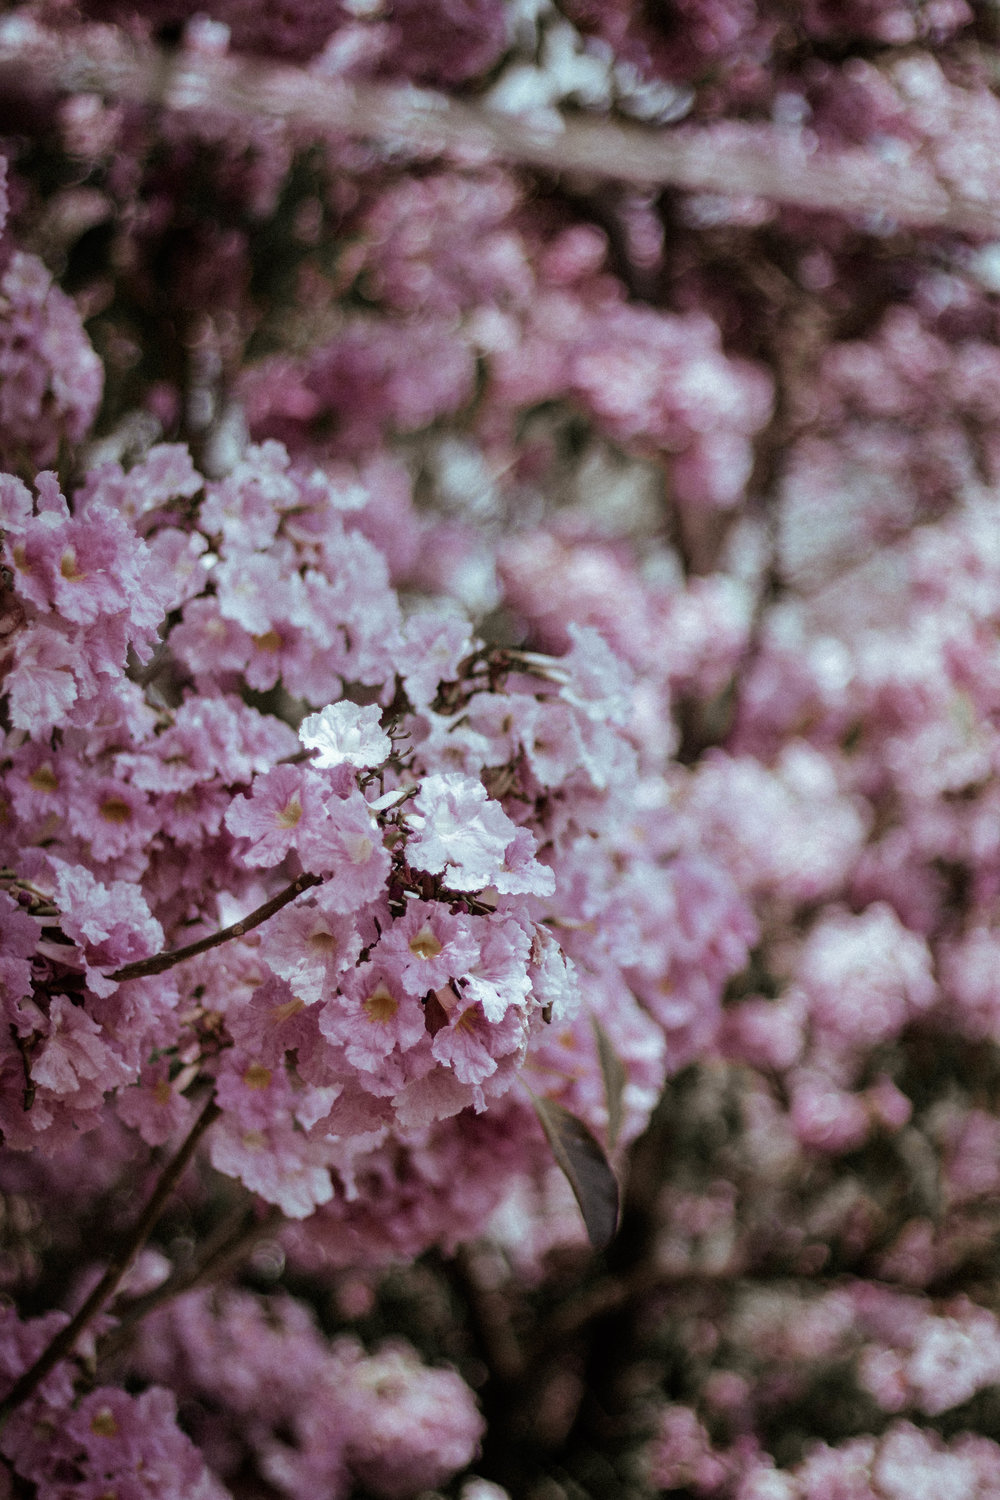 - Pink petals passingScents above so highPainted porcelain perfection Blossoms caress the sky